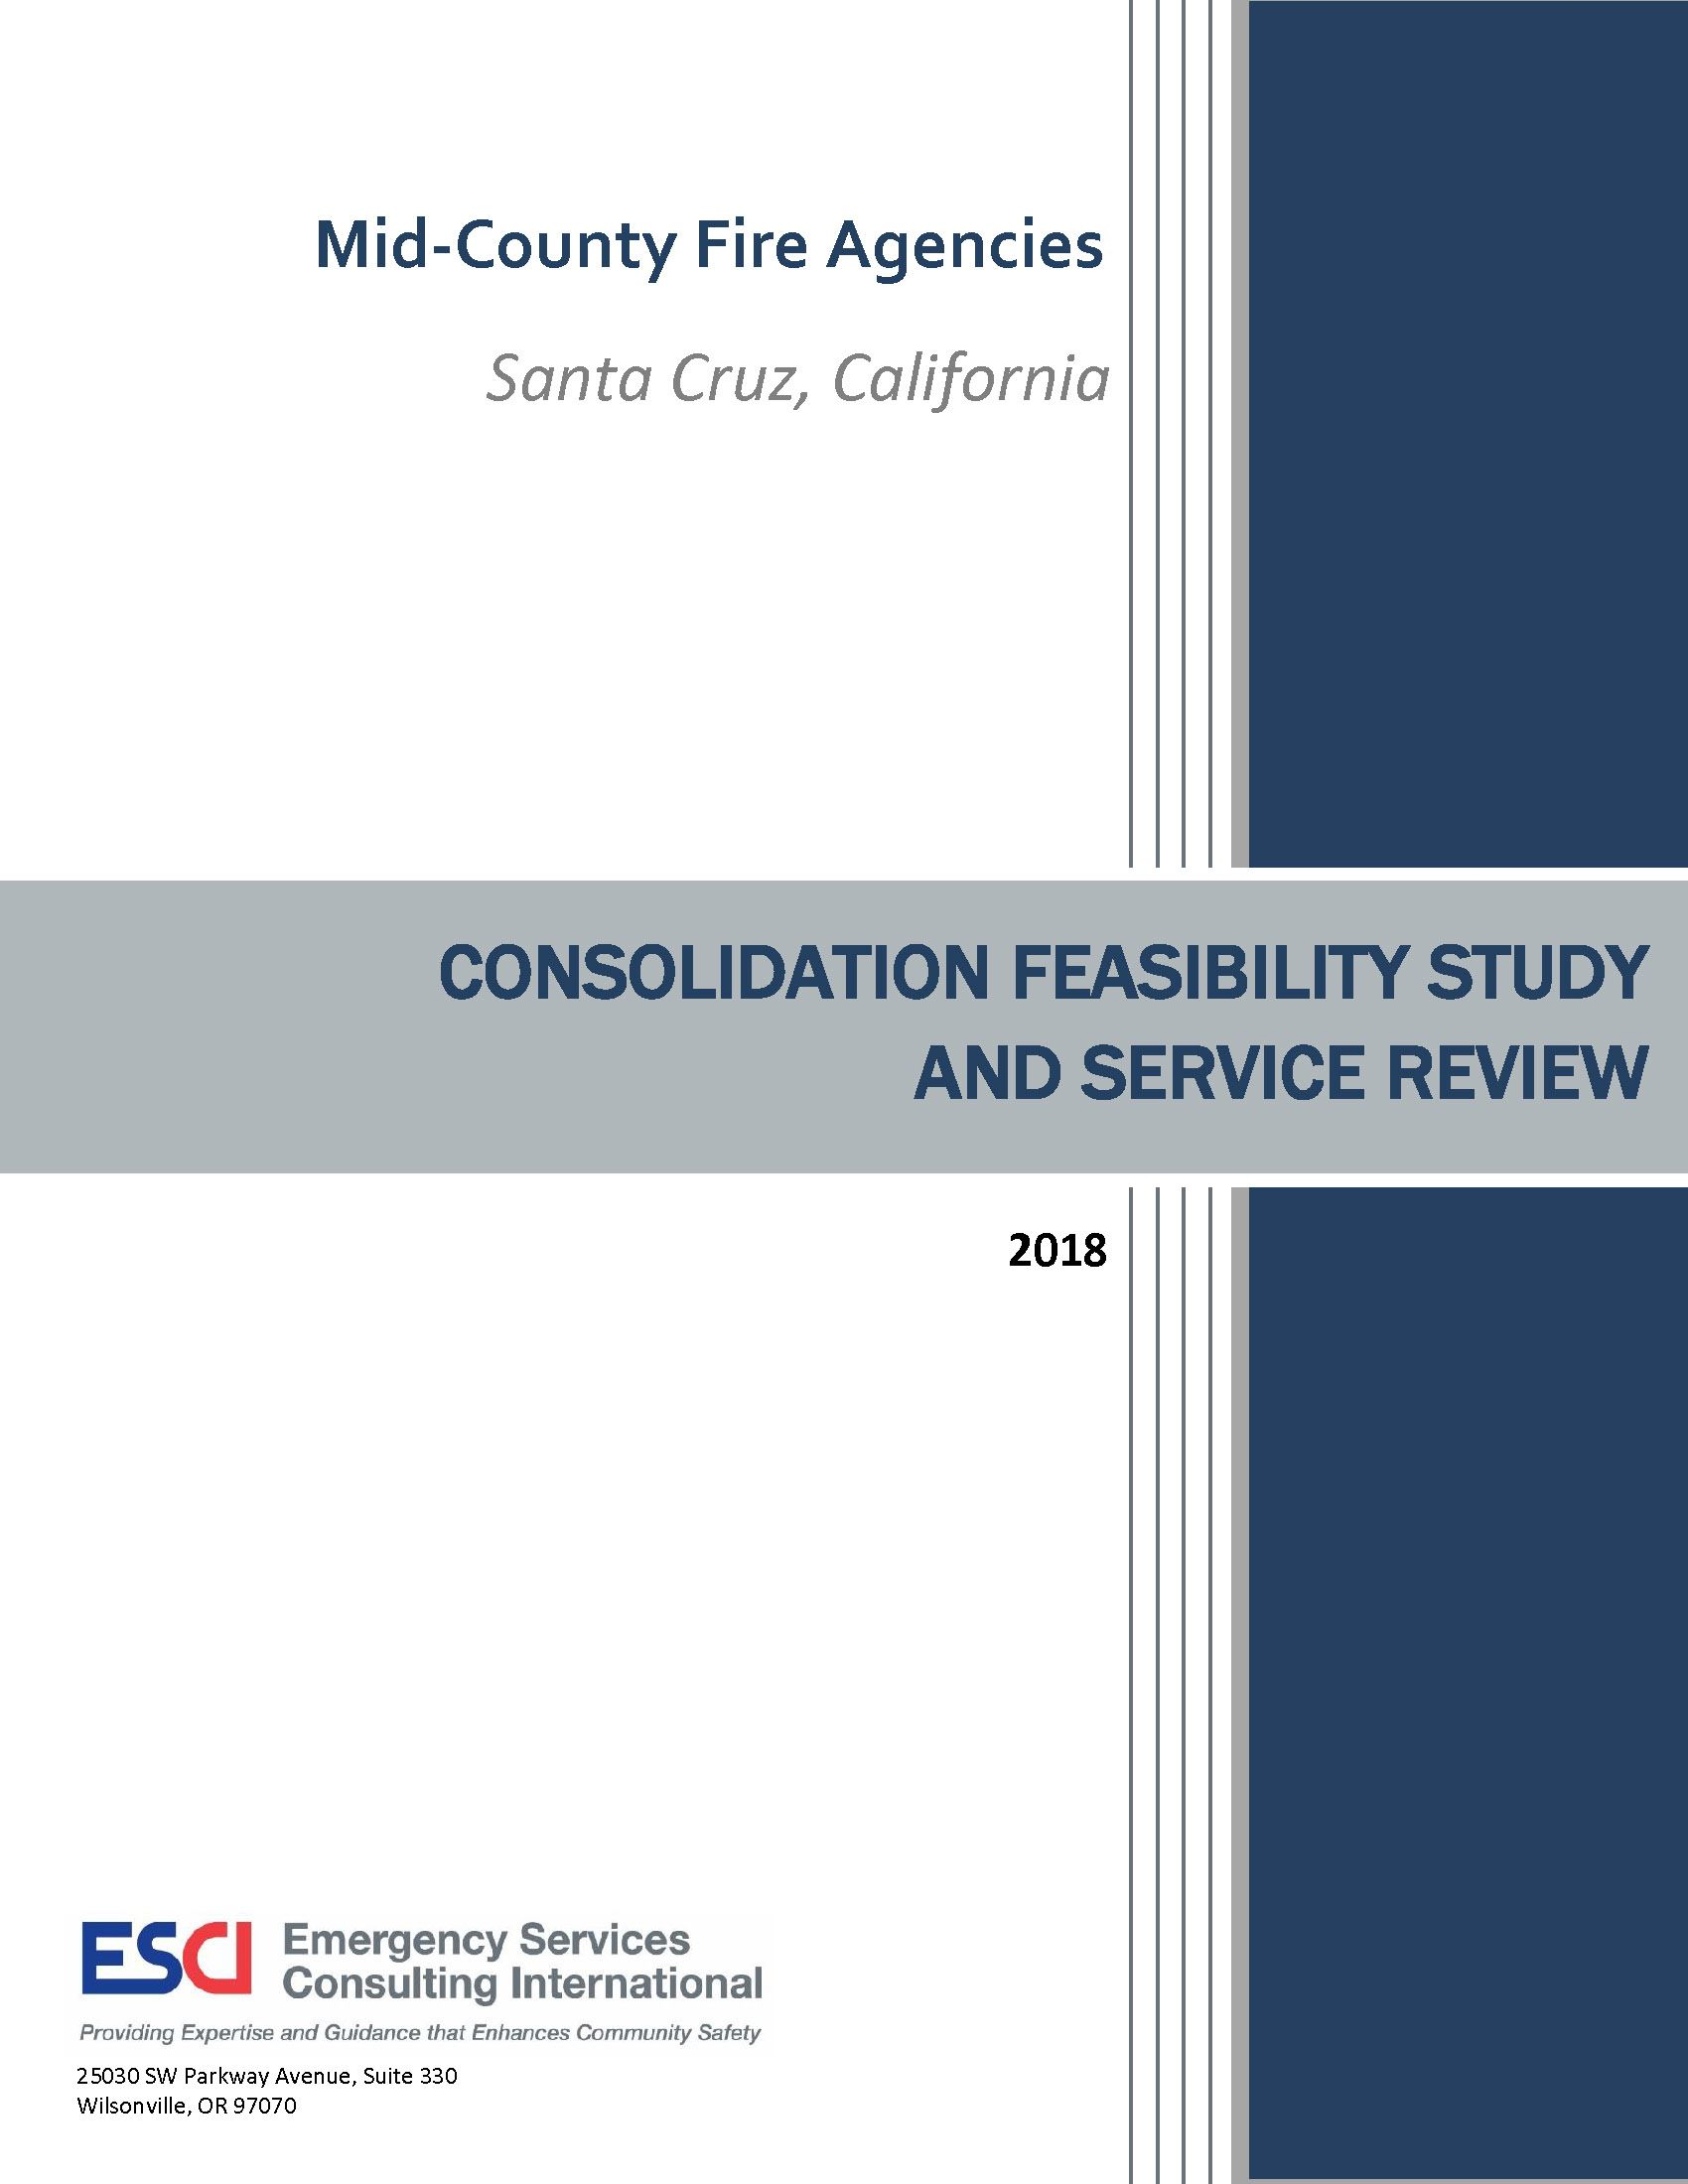 Mid-County Fire Agency Consolidation Study and Service Review Report - coverpage